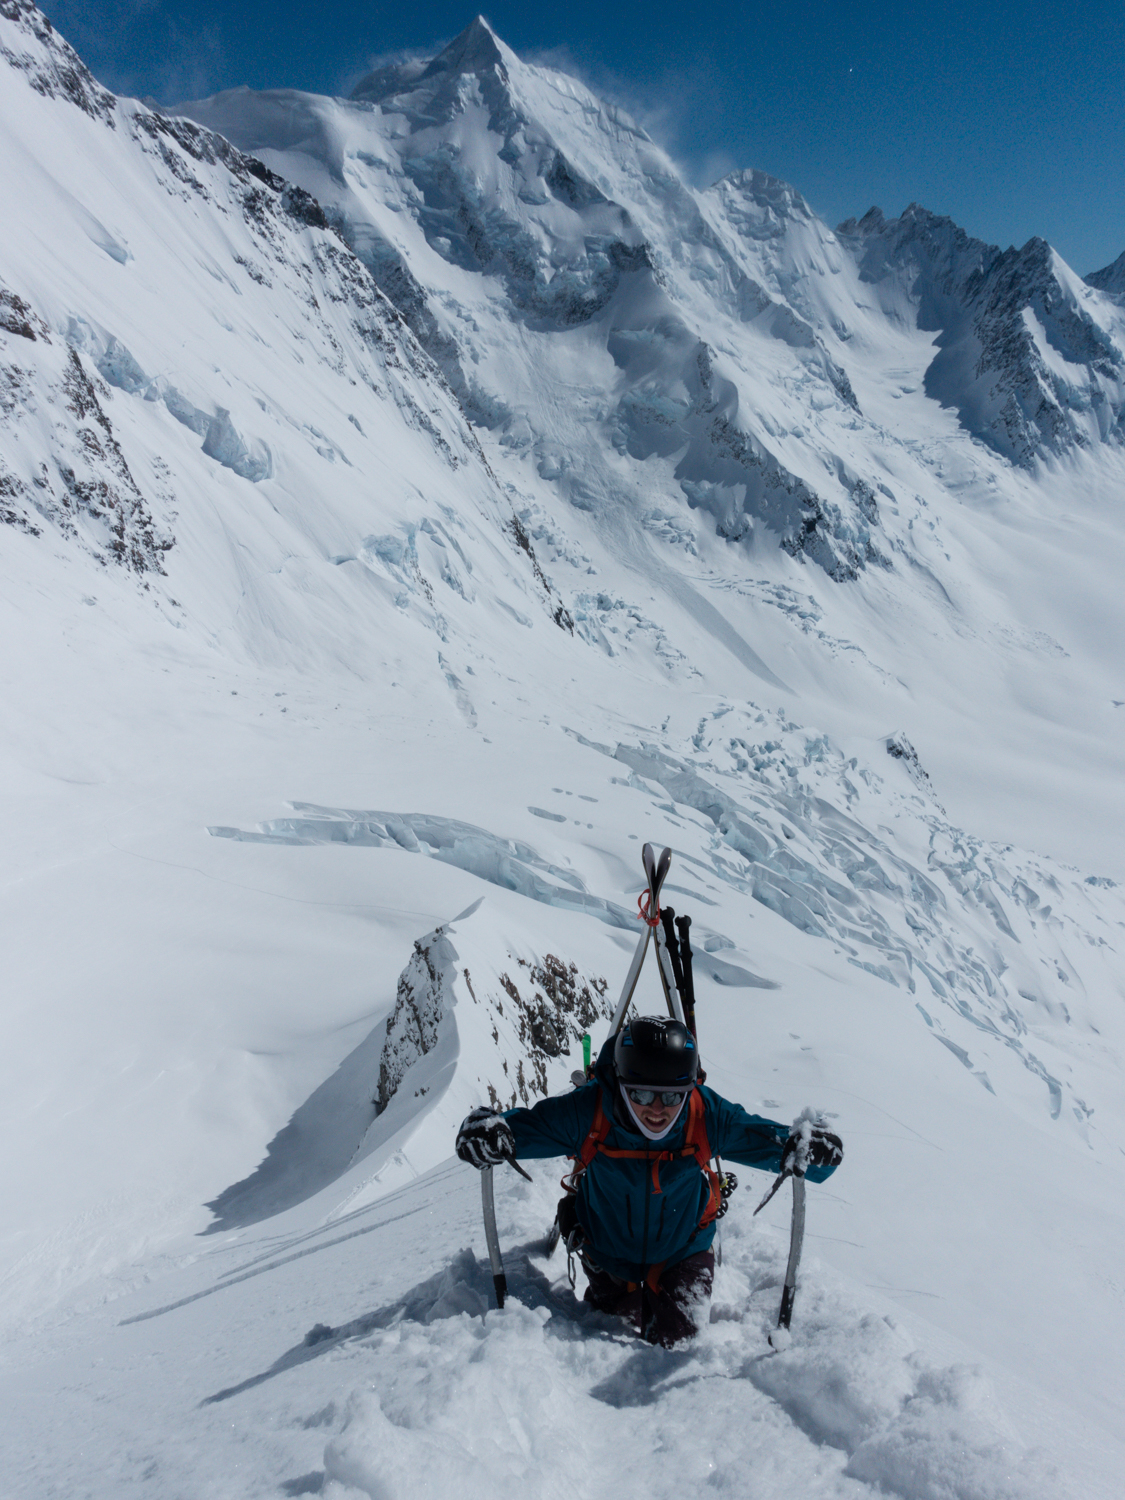 Dave Searle on the Kingspine, Silberhorn in back ground, Aoraki / Mt Cook